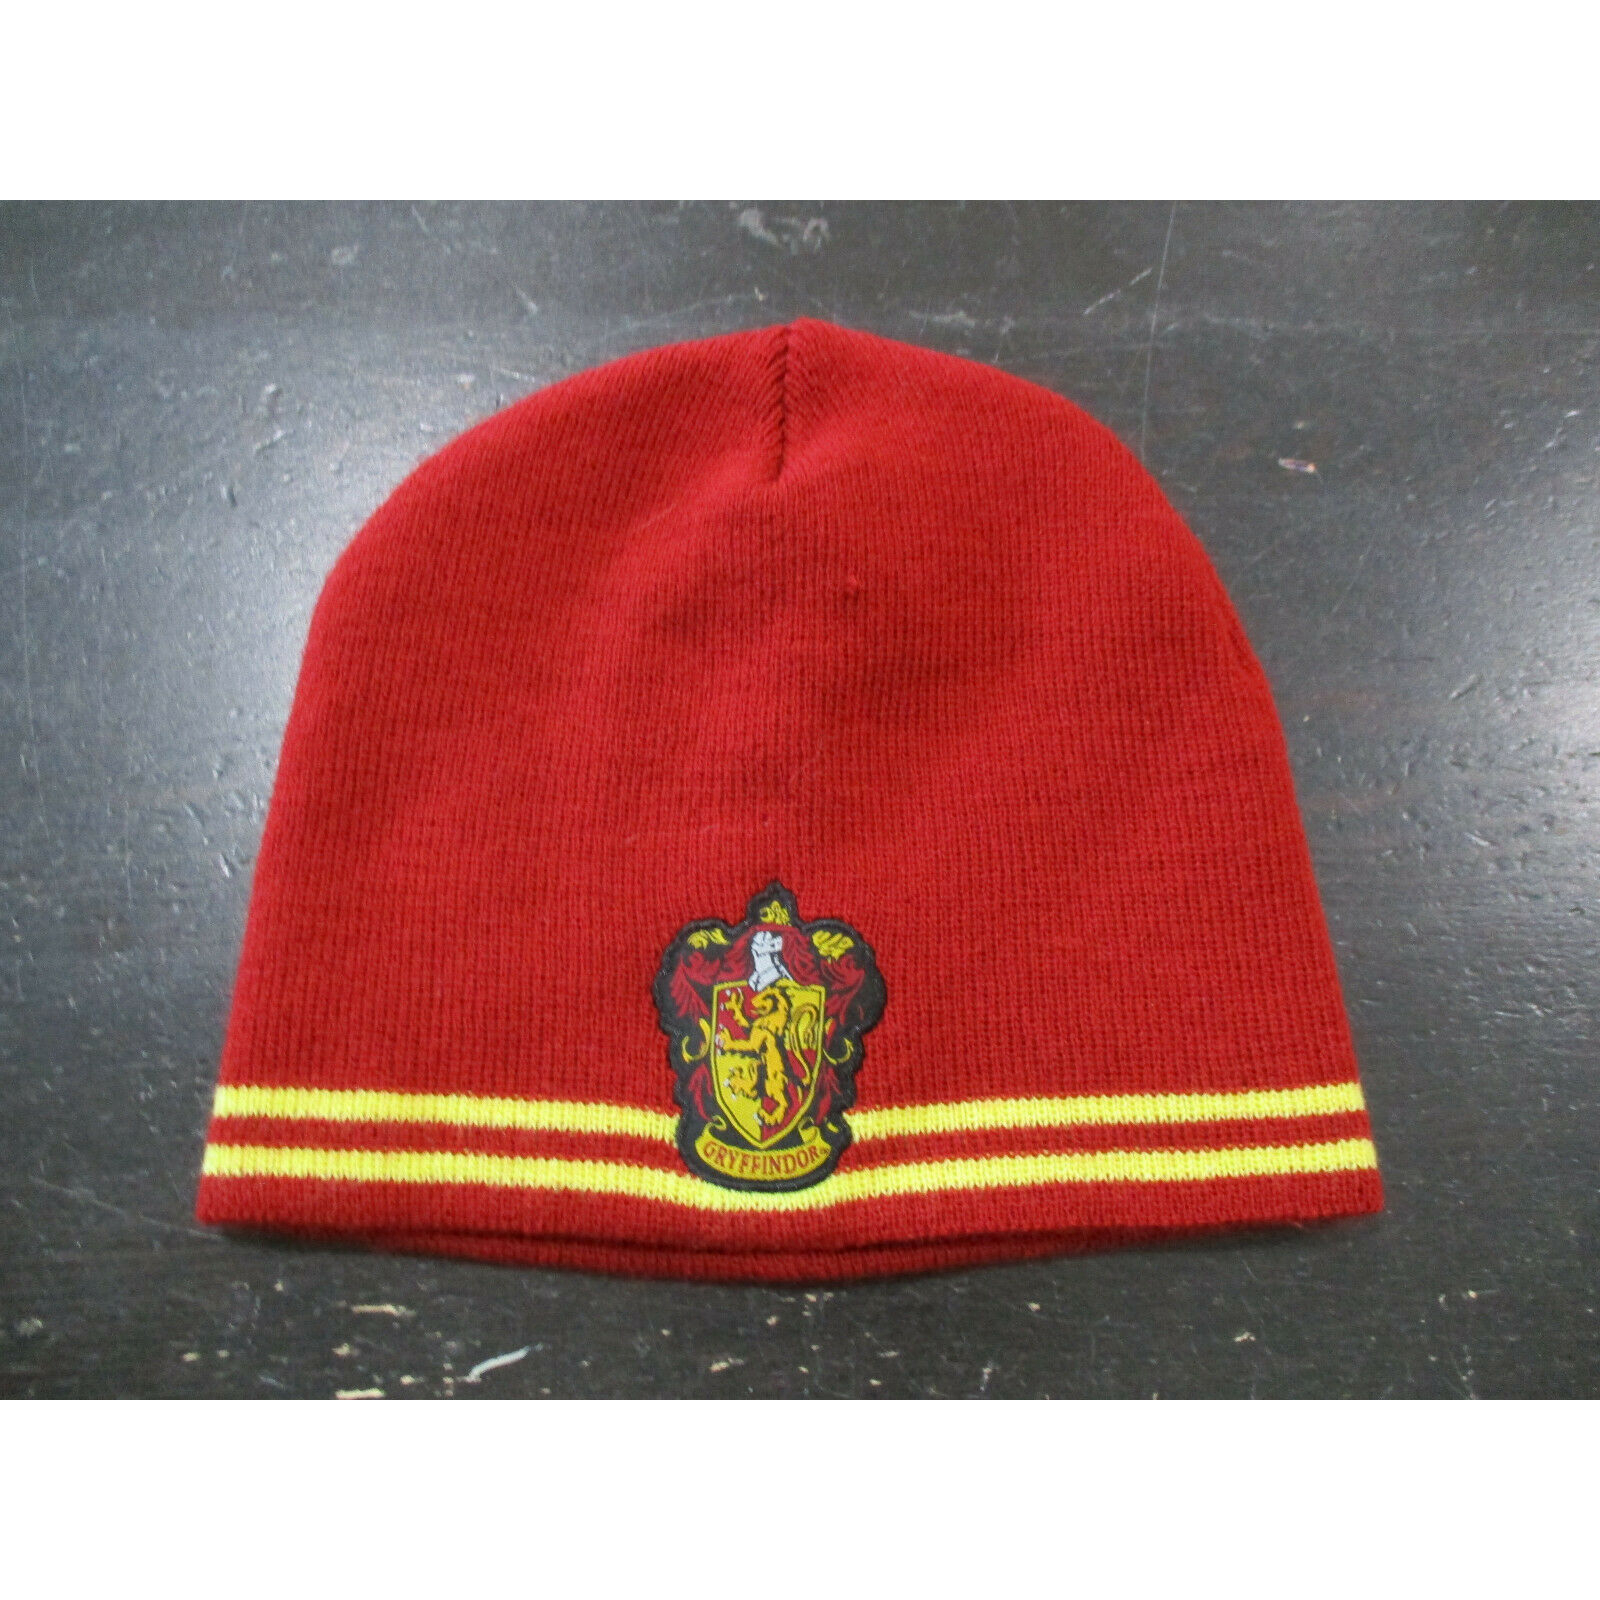 Product Image 1 - Harry Potter Gyffindor Beanie Hat